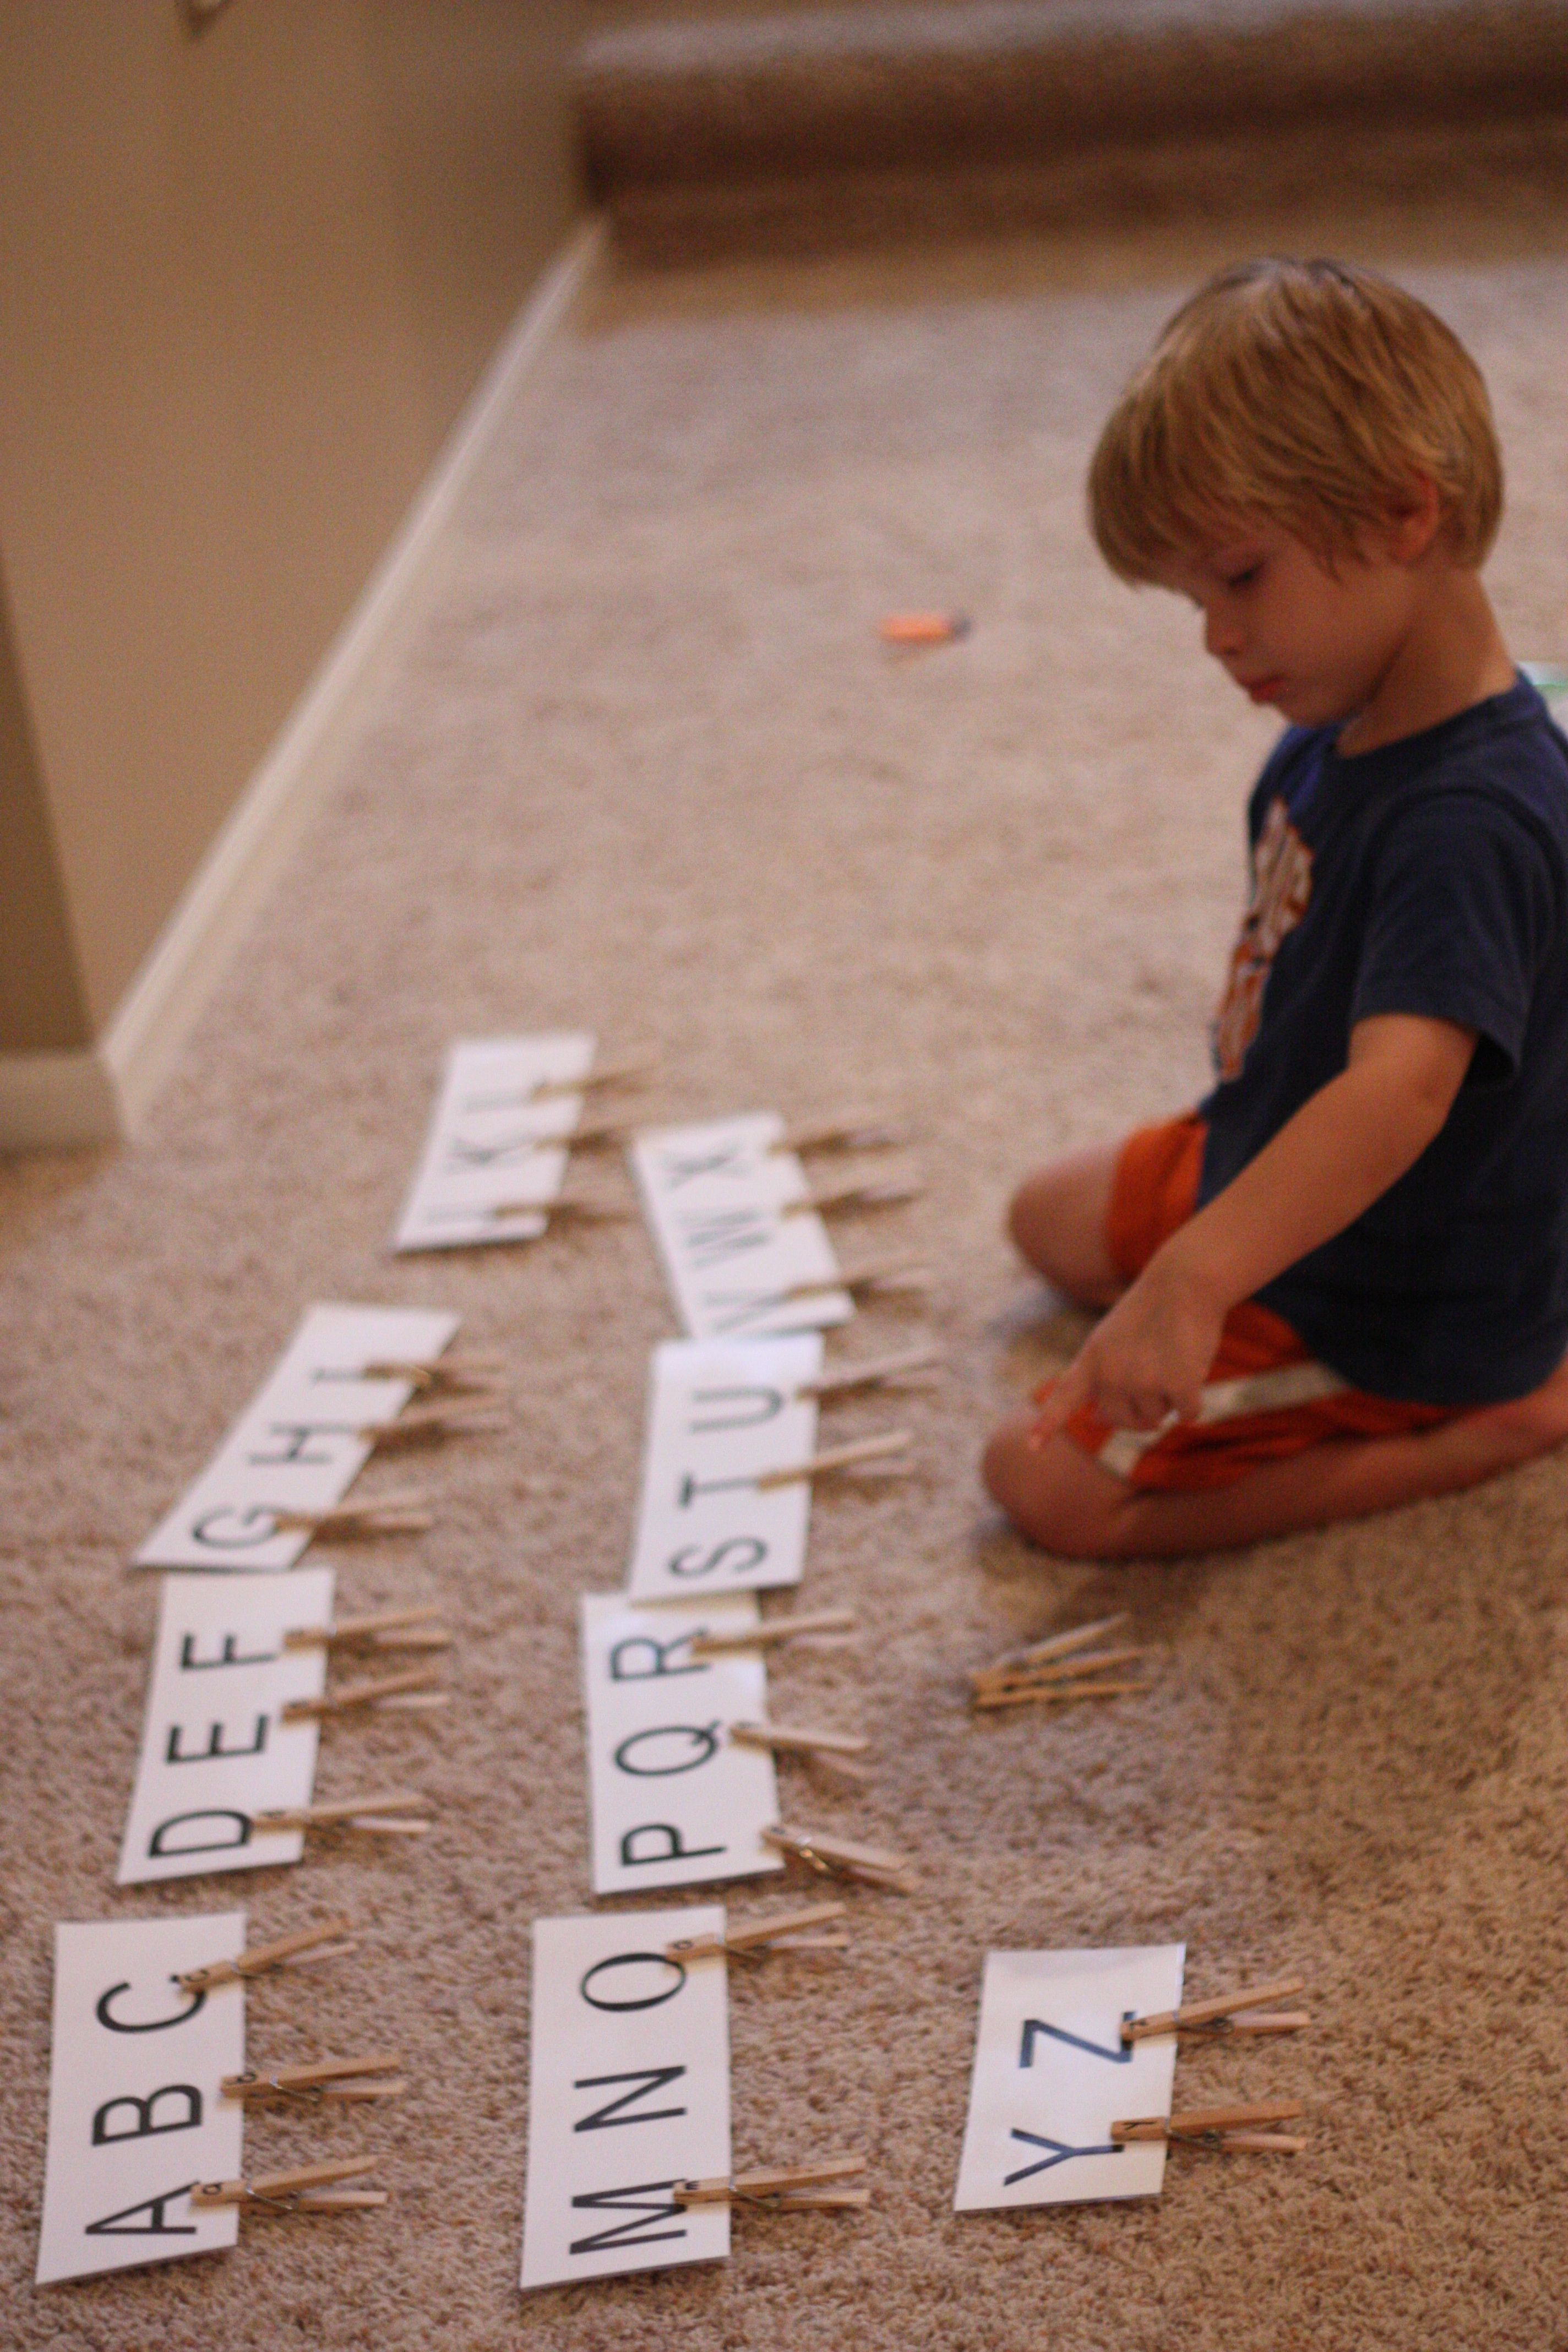 Clothespin Capital Amp Lowercase Matching Activity